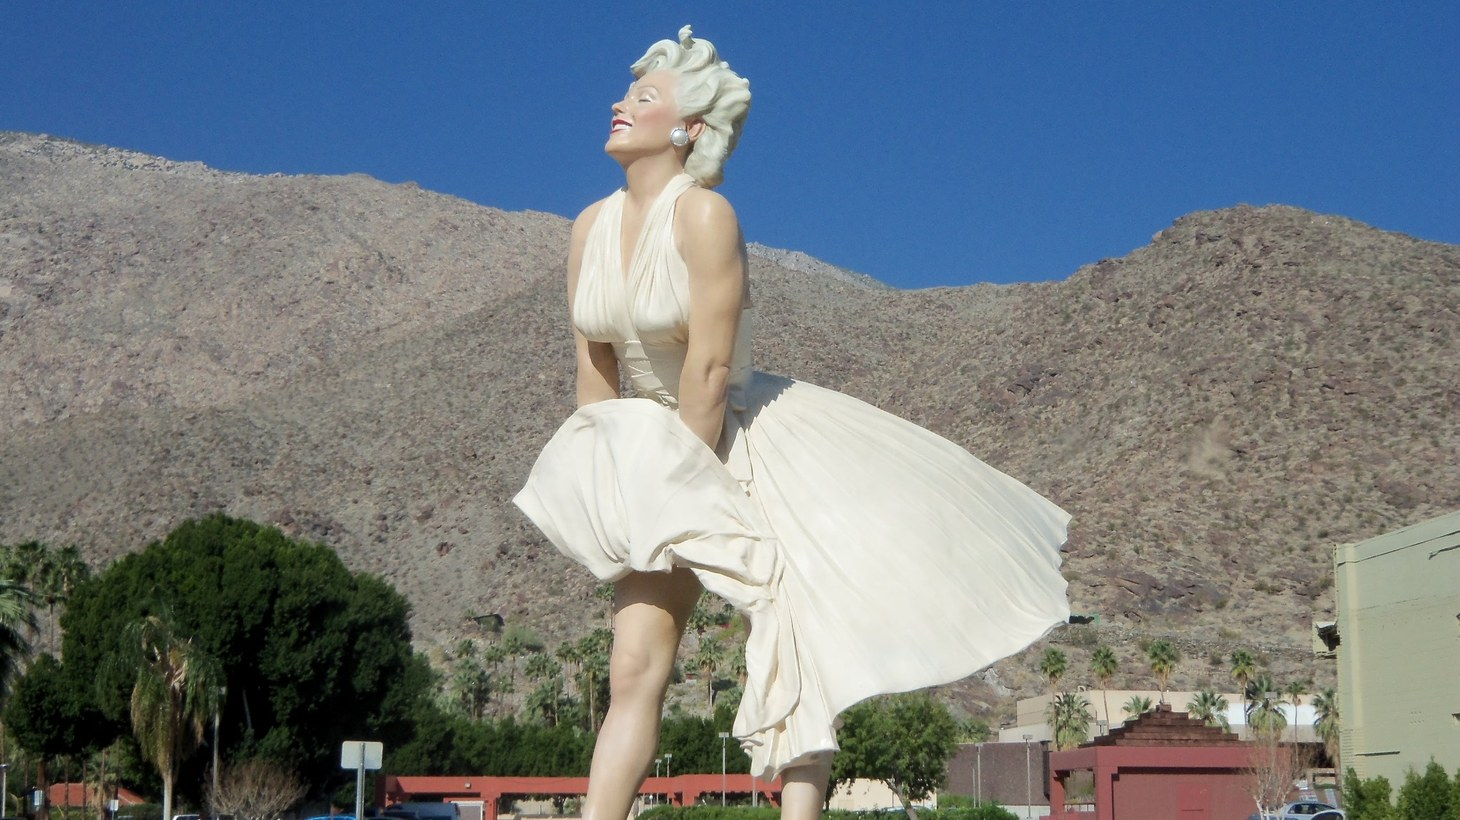 """The """"Forever Marilyn"""" statue in Palm Springs, 2013. It'll soon return to the area after being on tour across the U.S. for the past few years."""